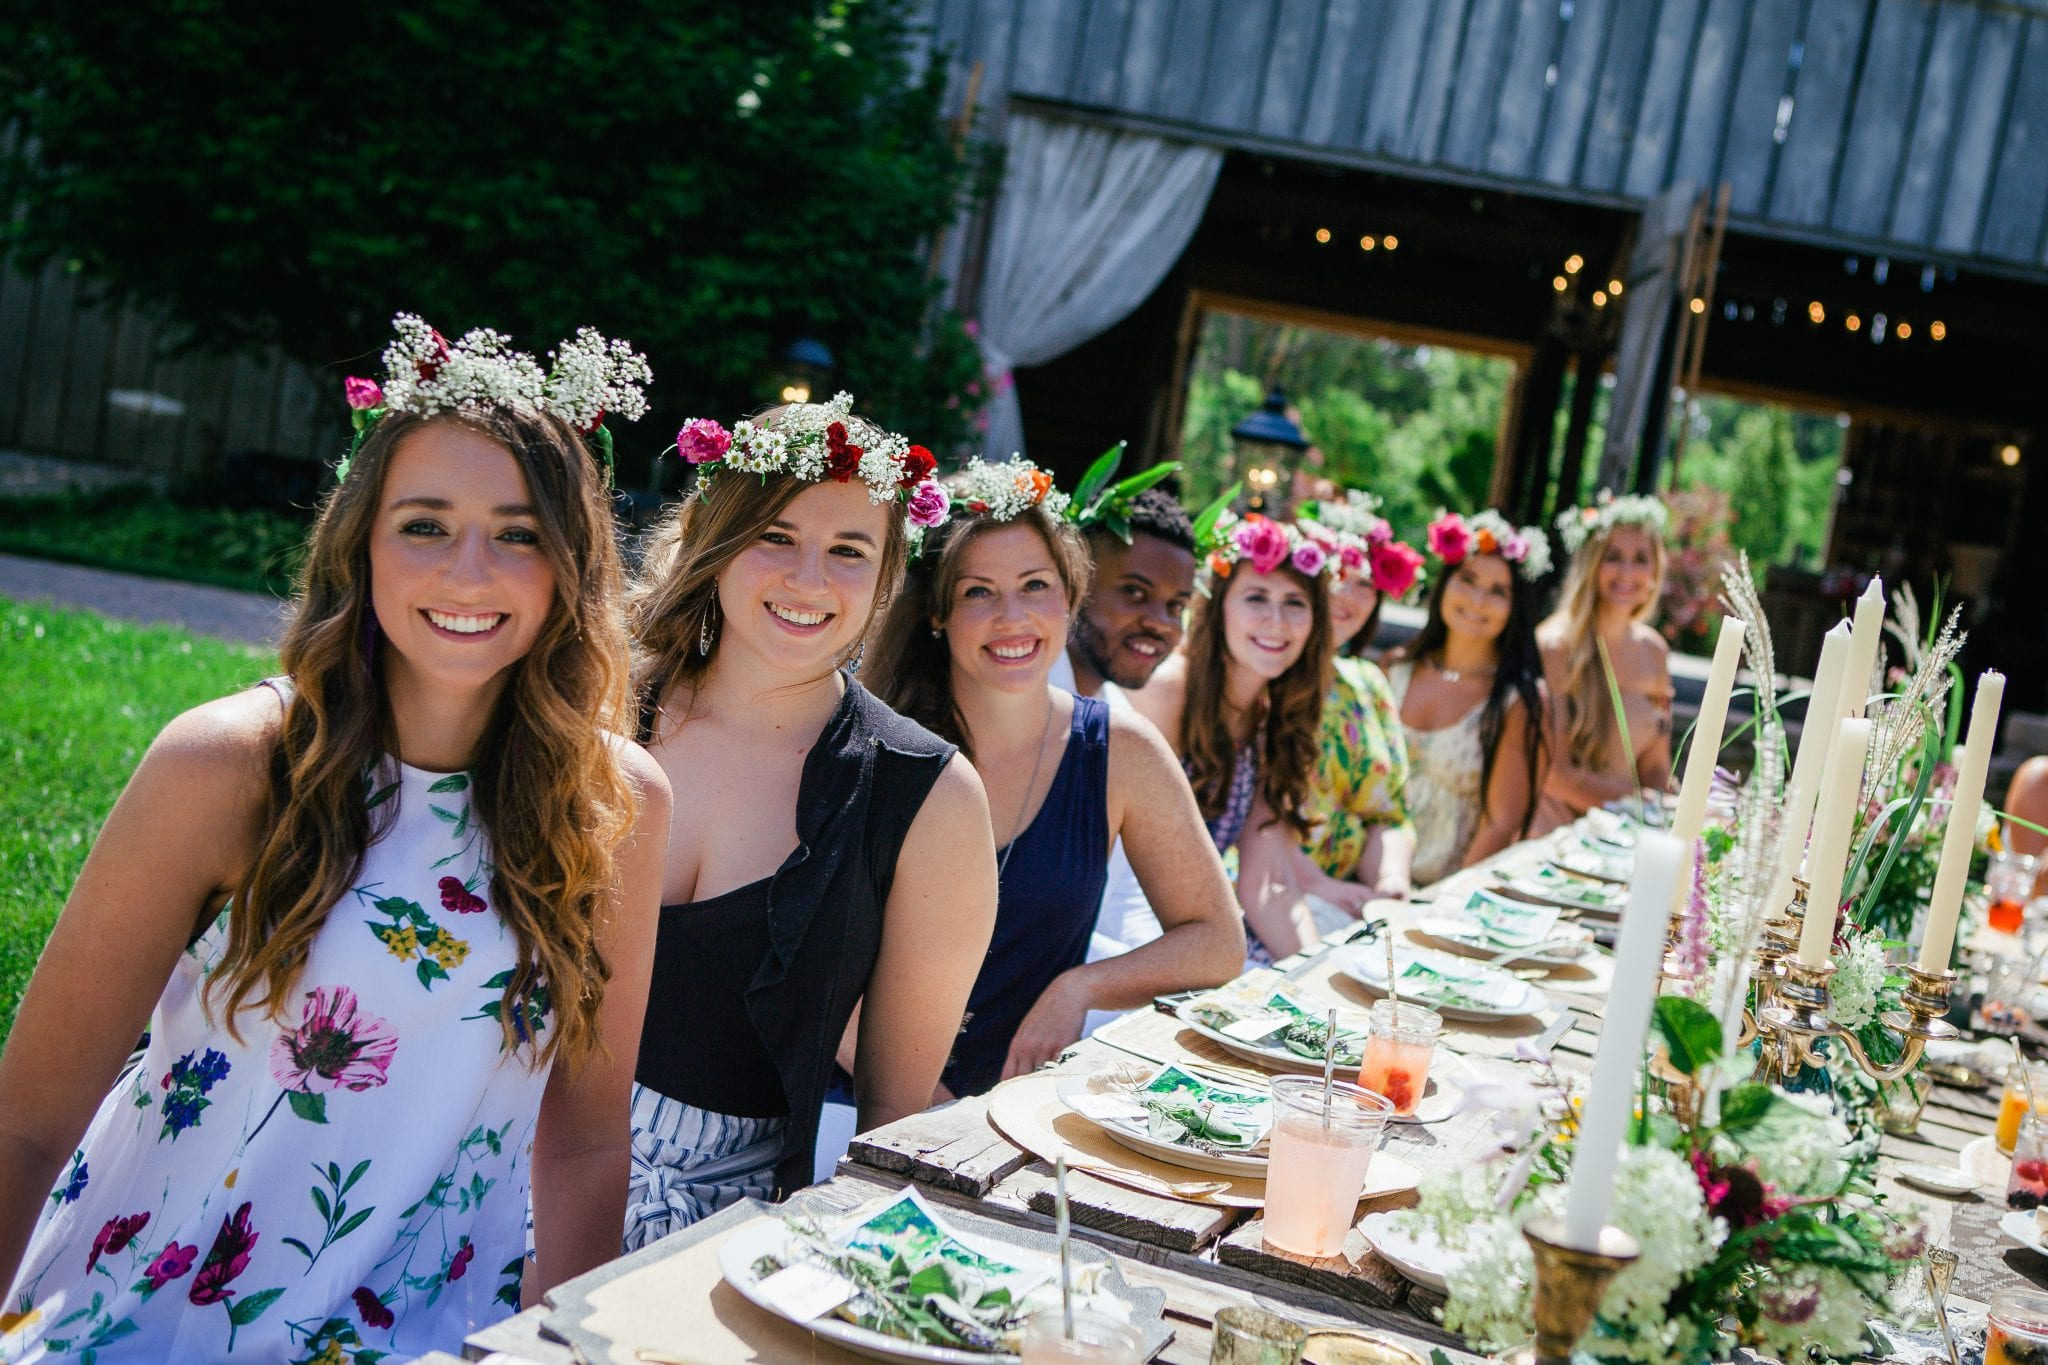 How to Connect with Other Local Bloggers and Host an Epic Blogger Brunch